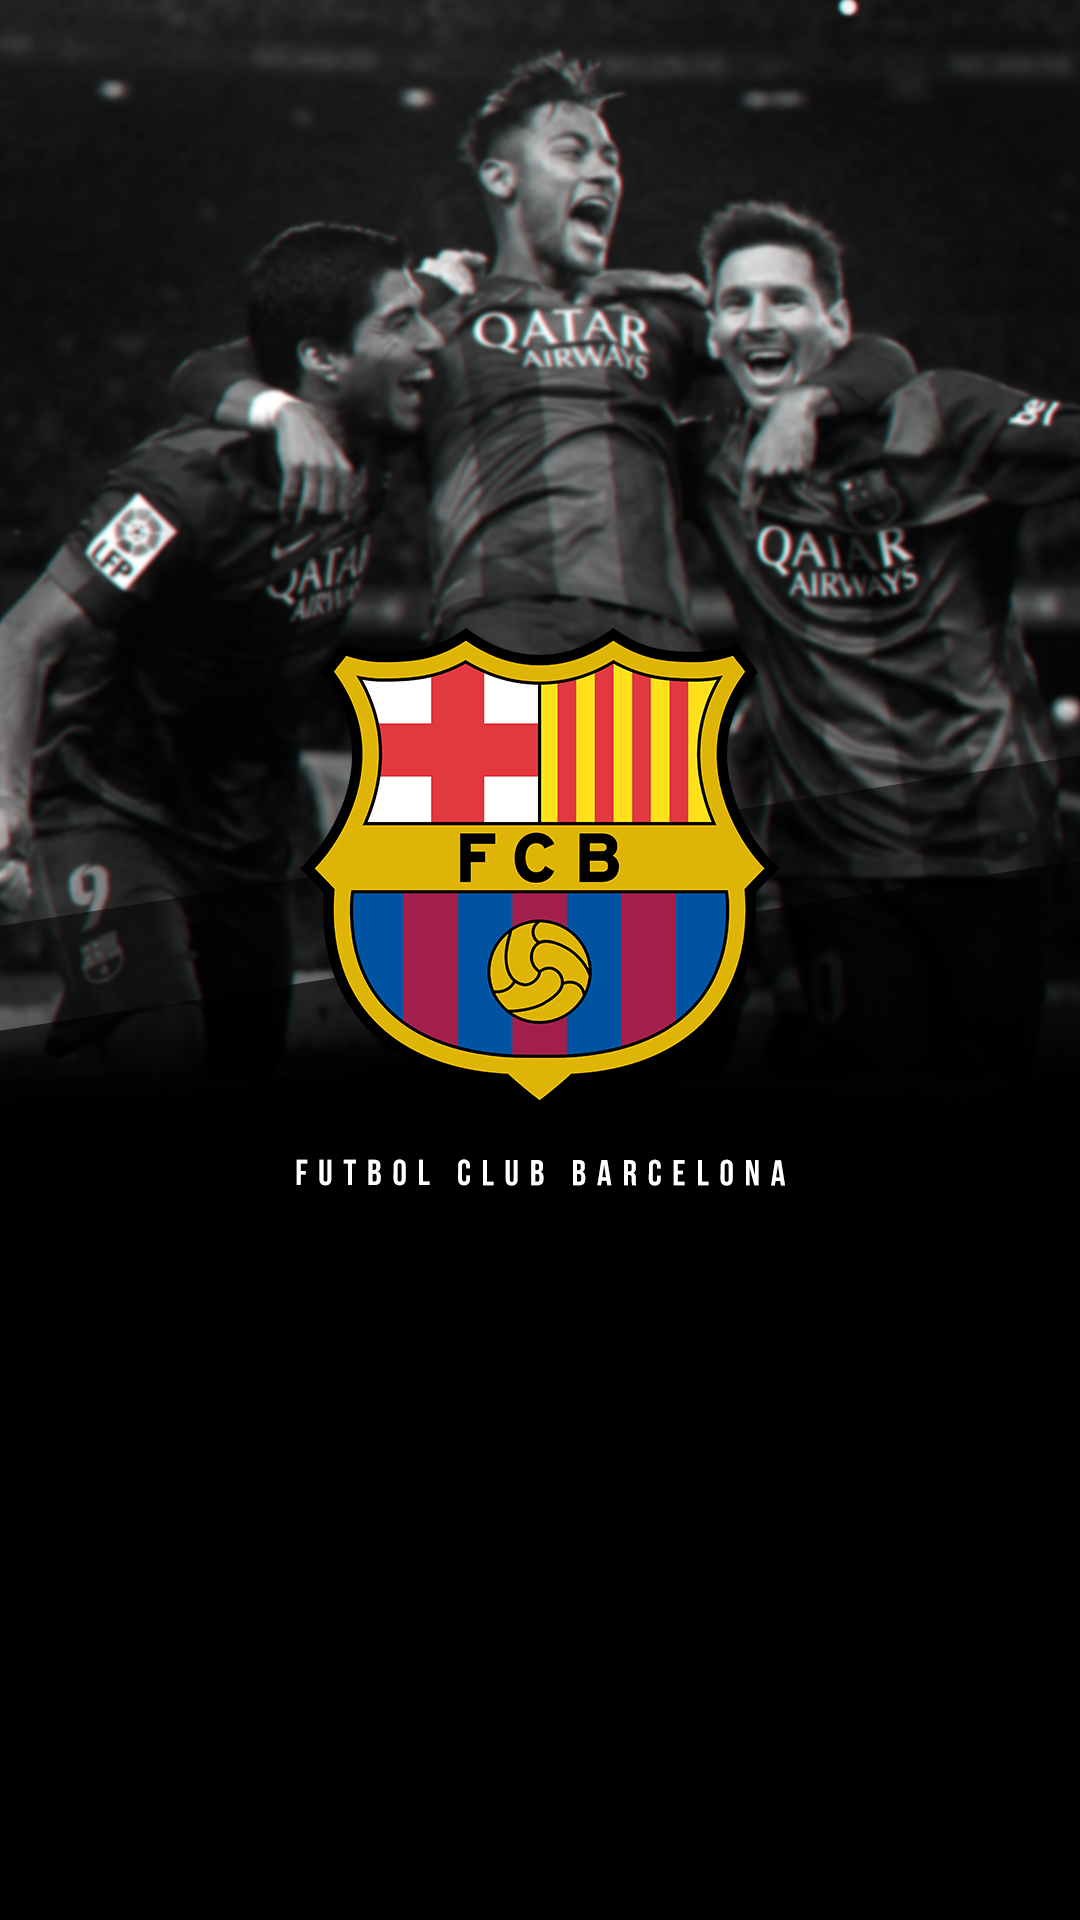 Wallpaper iphone barcelona - Hd Barcelona Fc Iphone 5 Background Png 1080 Fc Barcelonaiphone Wallpaper